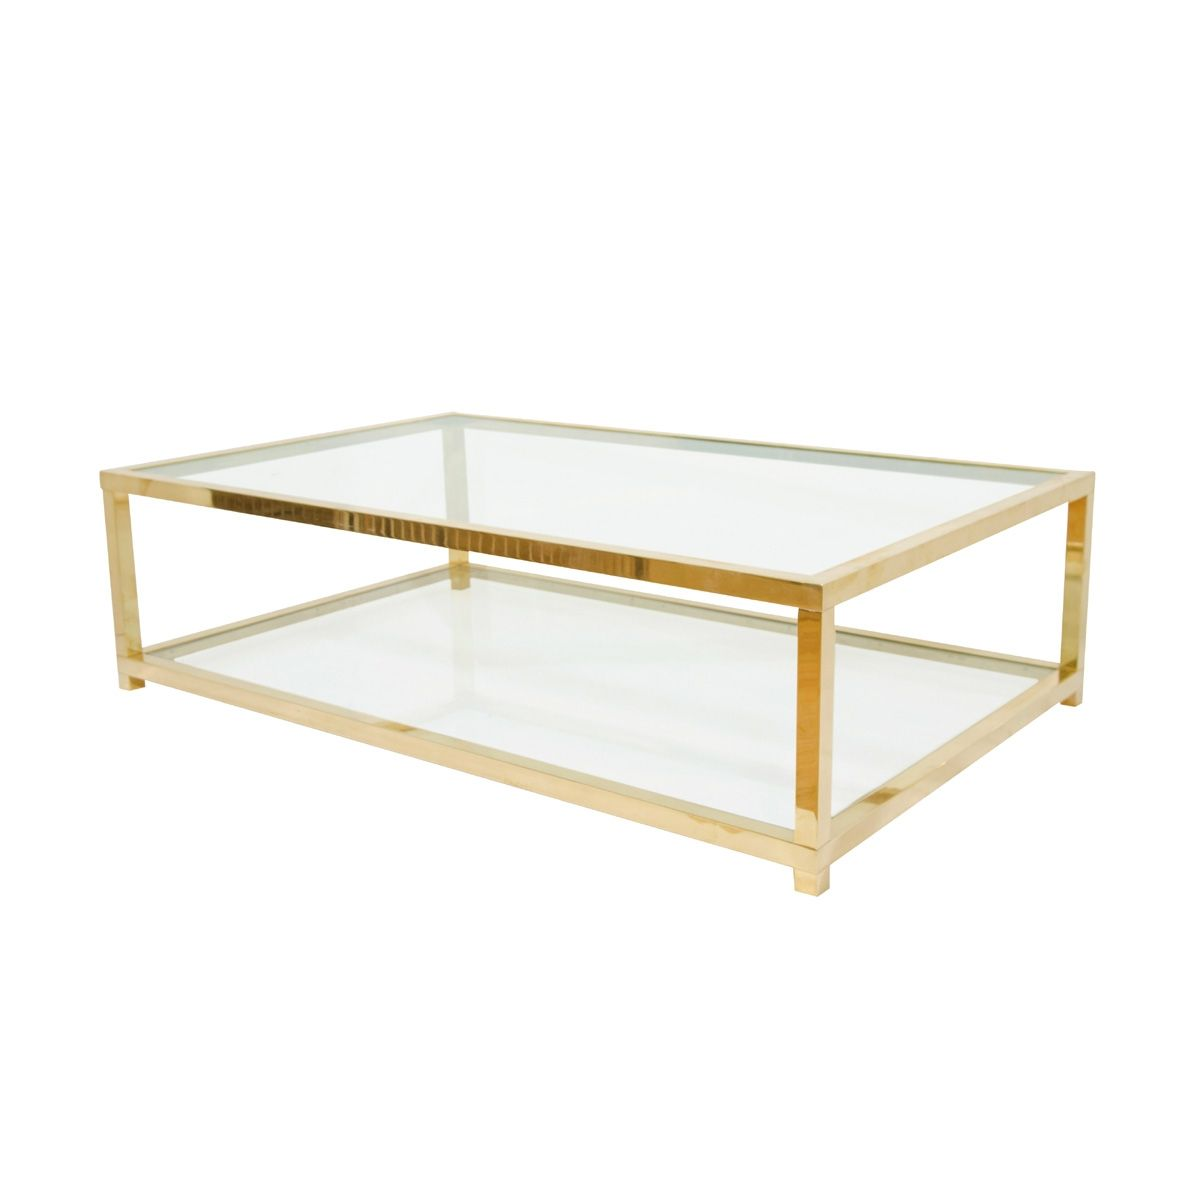 Two Tier Round Glass Coffee Table Httptherapybychancecom - Two tier glass side table